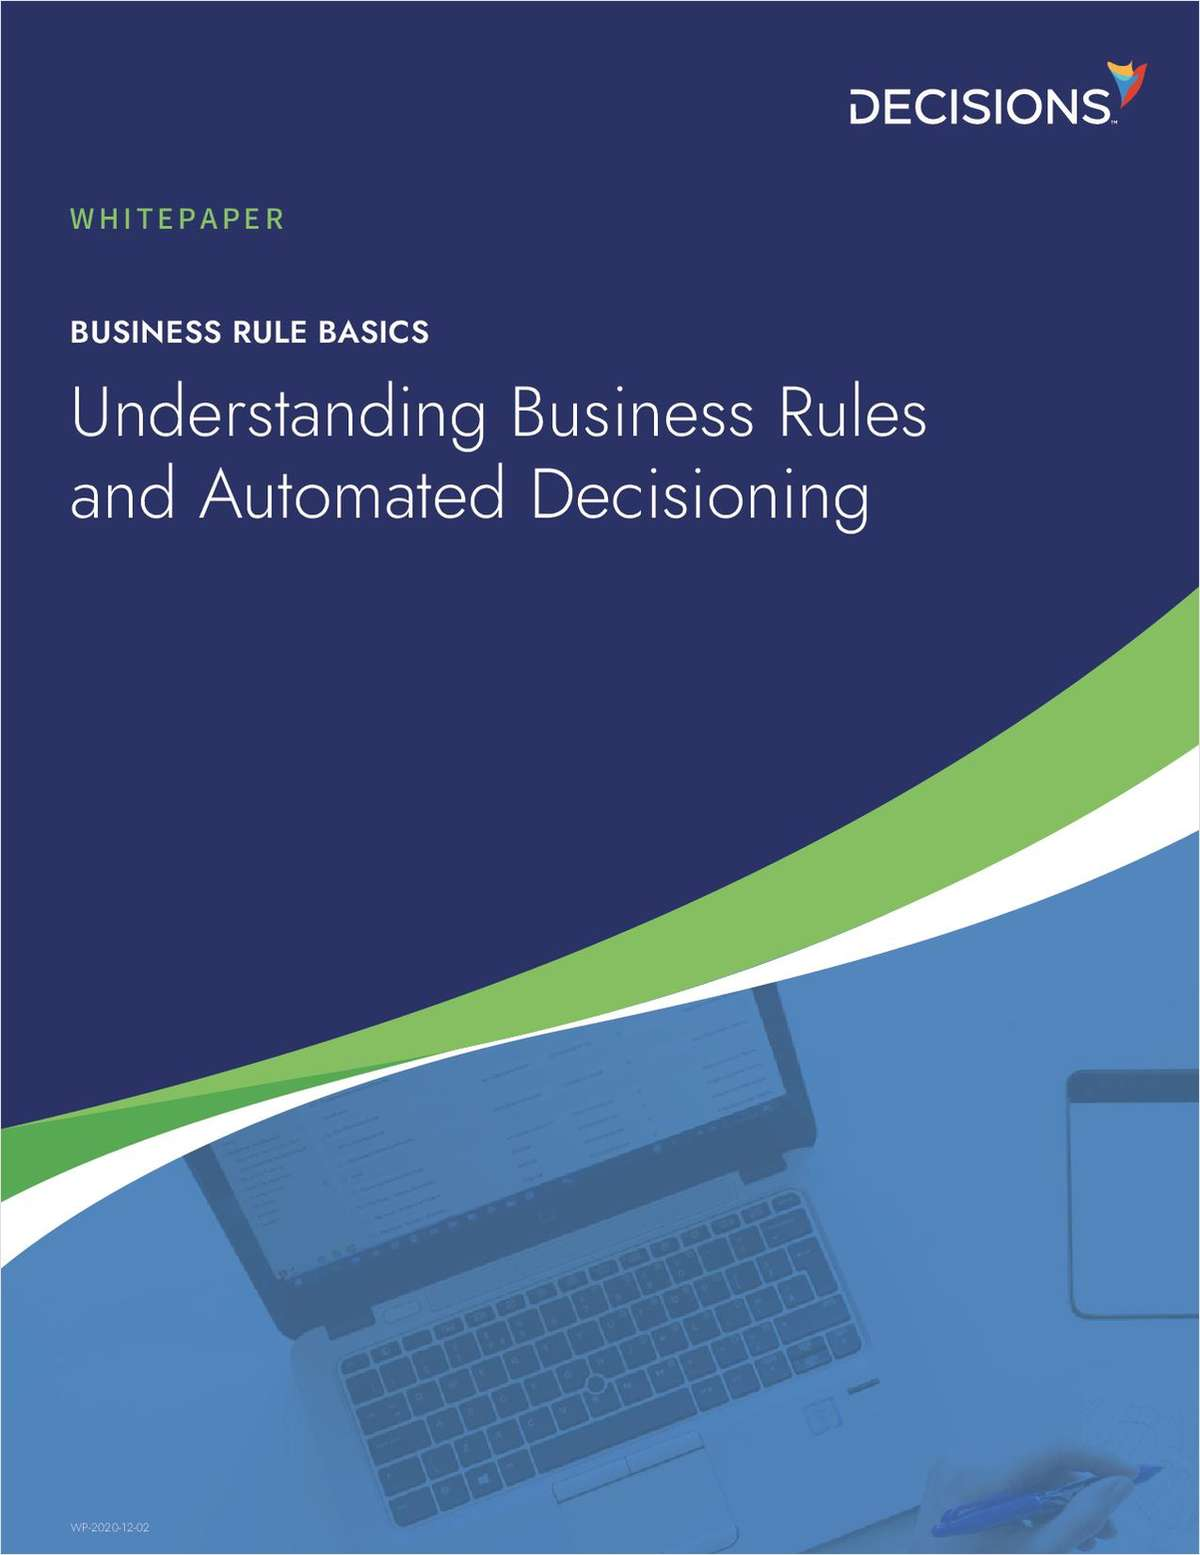 Understanding Business Rules and Automated Decisioning